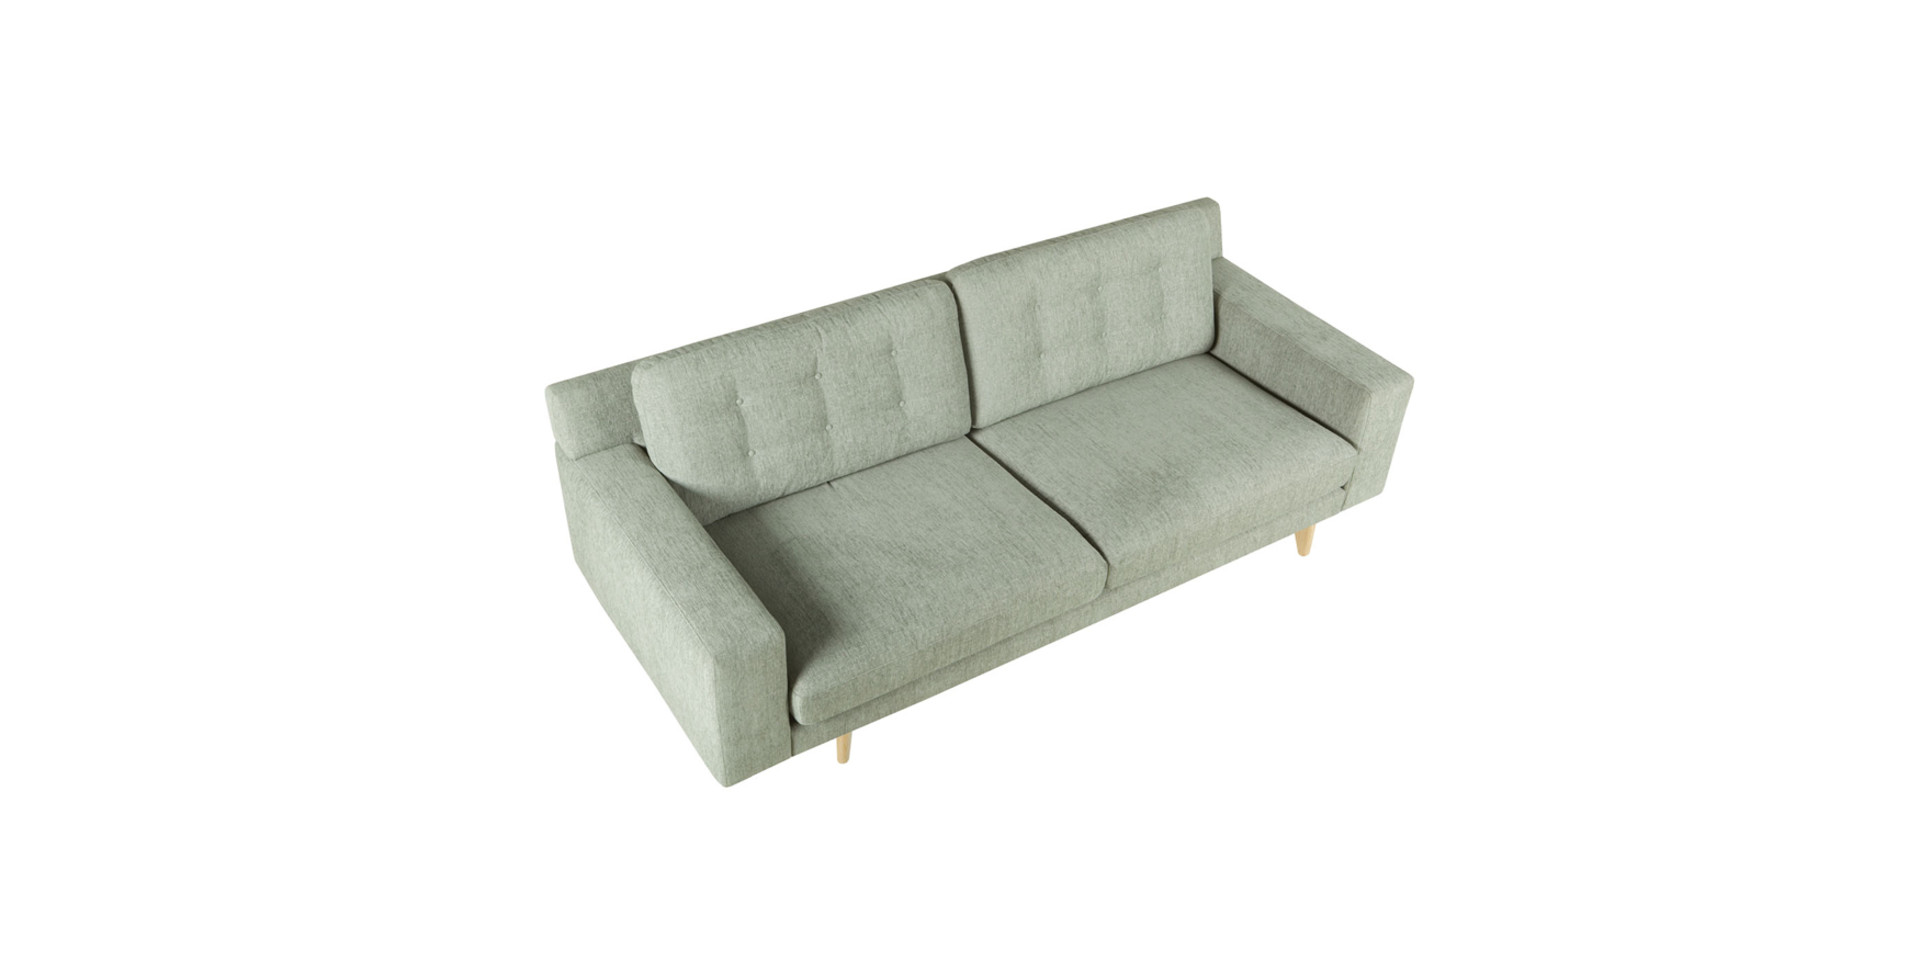 sits-axel-canape-3seater_riscorunner9_blue_grey_5